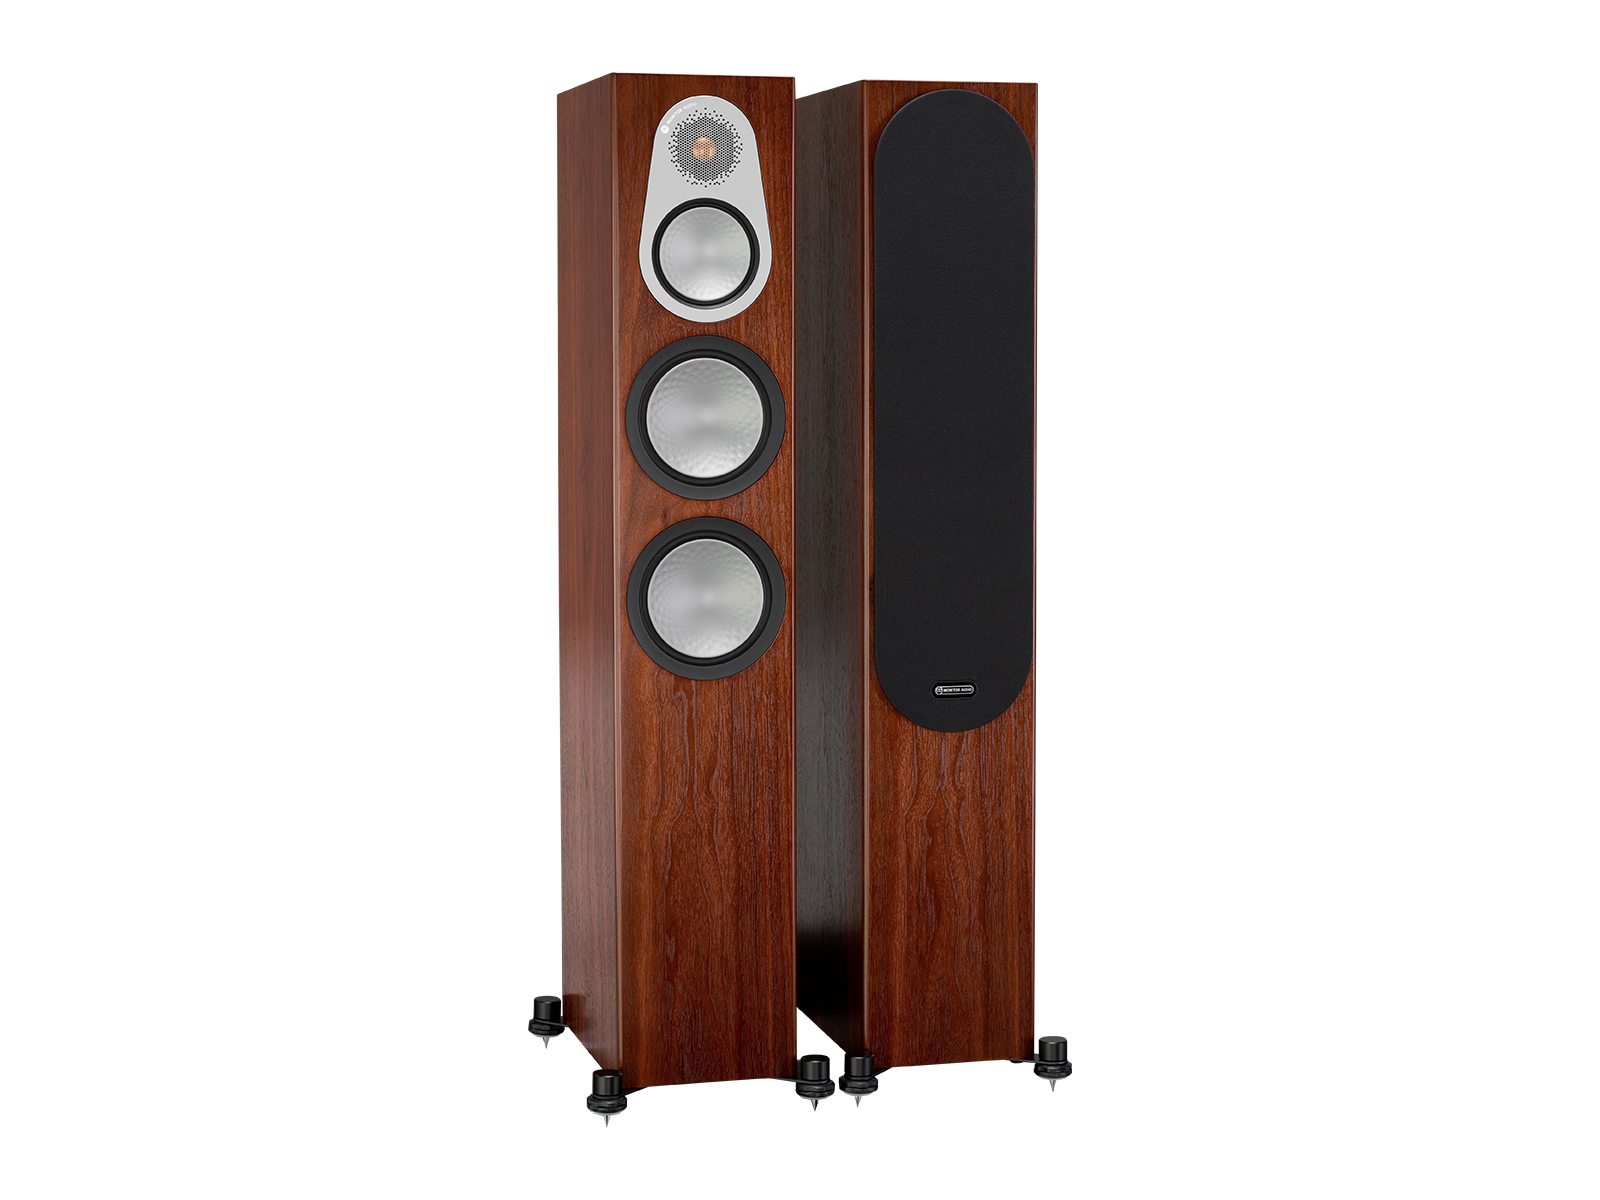 Silver 300, floorstanding speakers, with and without grille in a walnut finish.